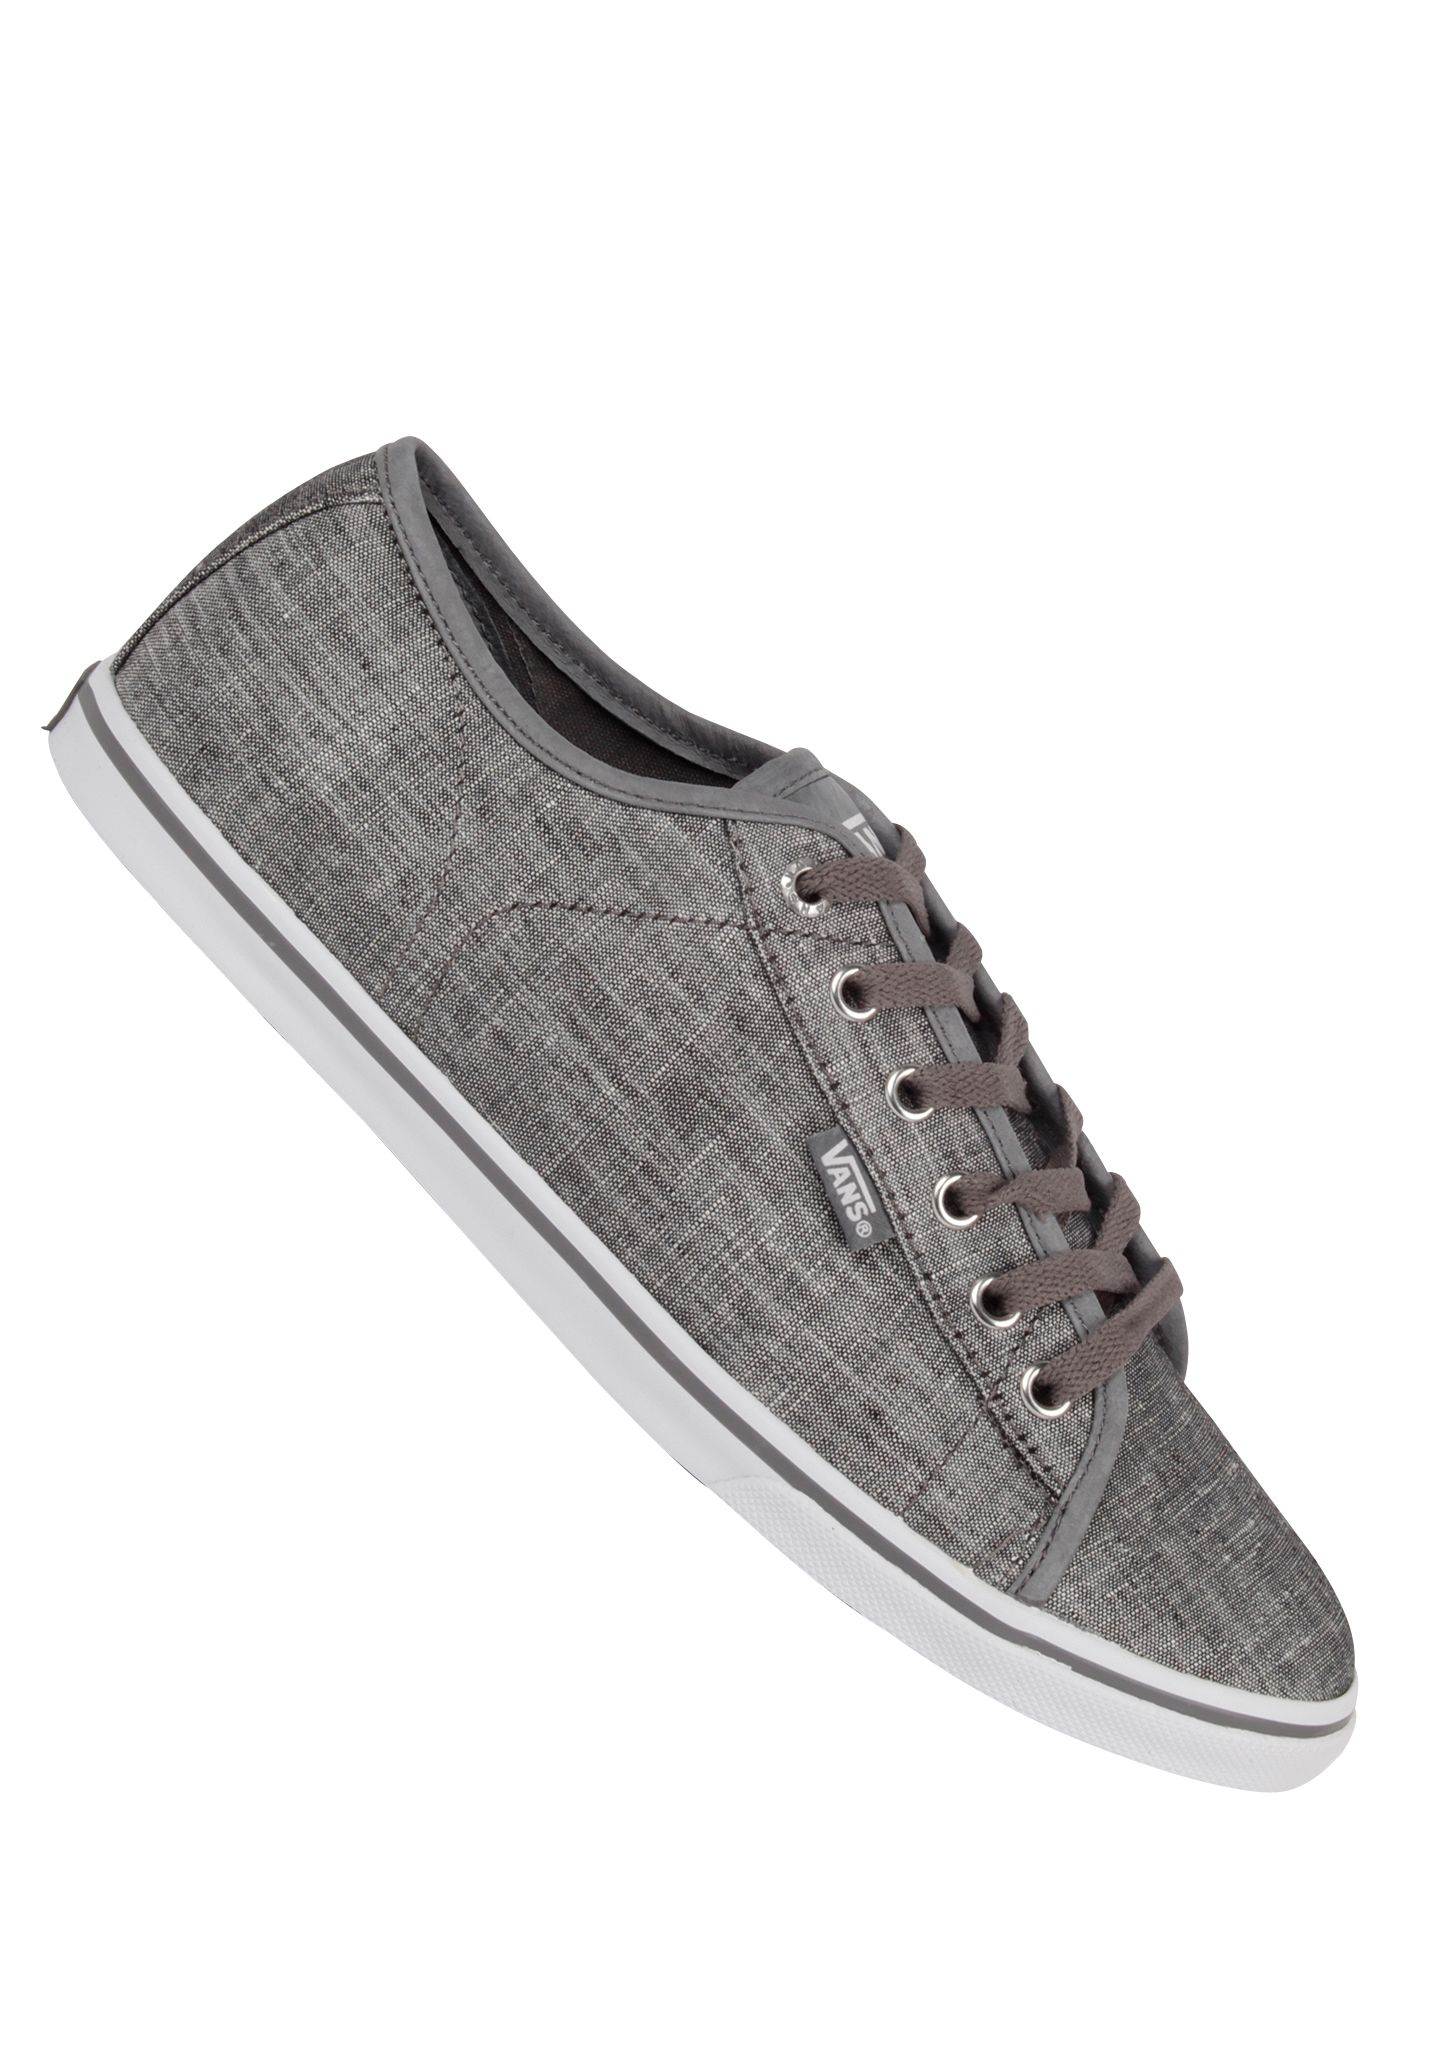 8088721c998d59 Vans Ferris Lo Pro Shoe - Sneakers for Women - Grey - Planet Sports